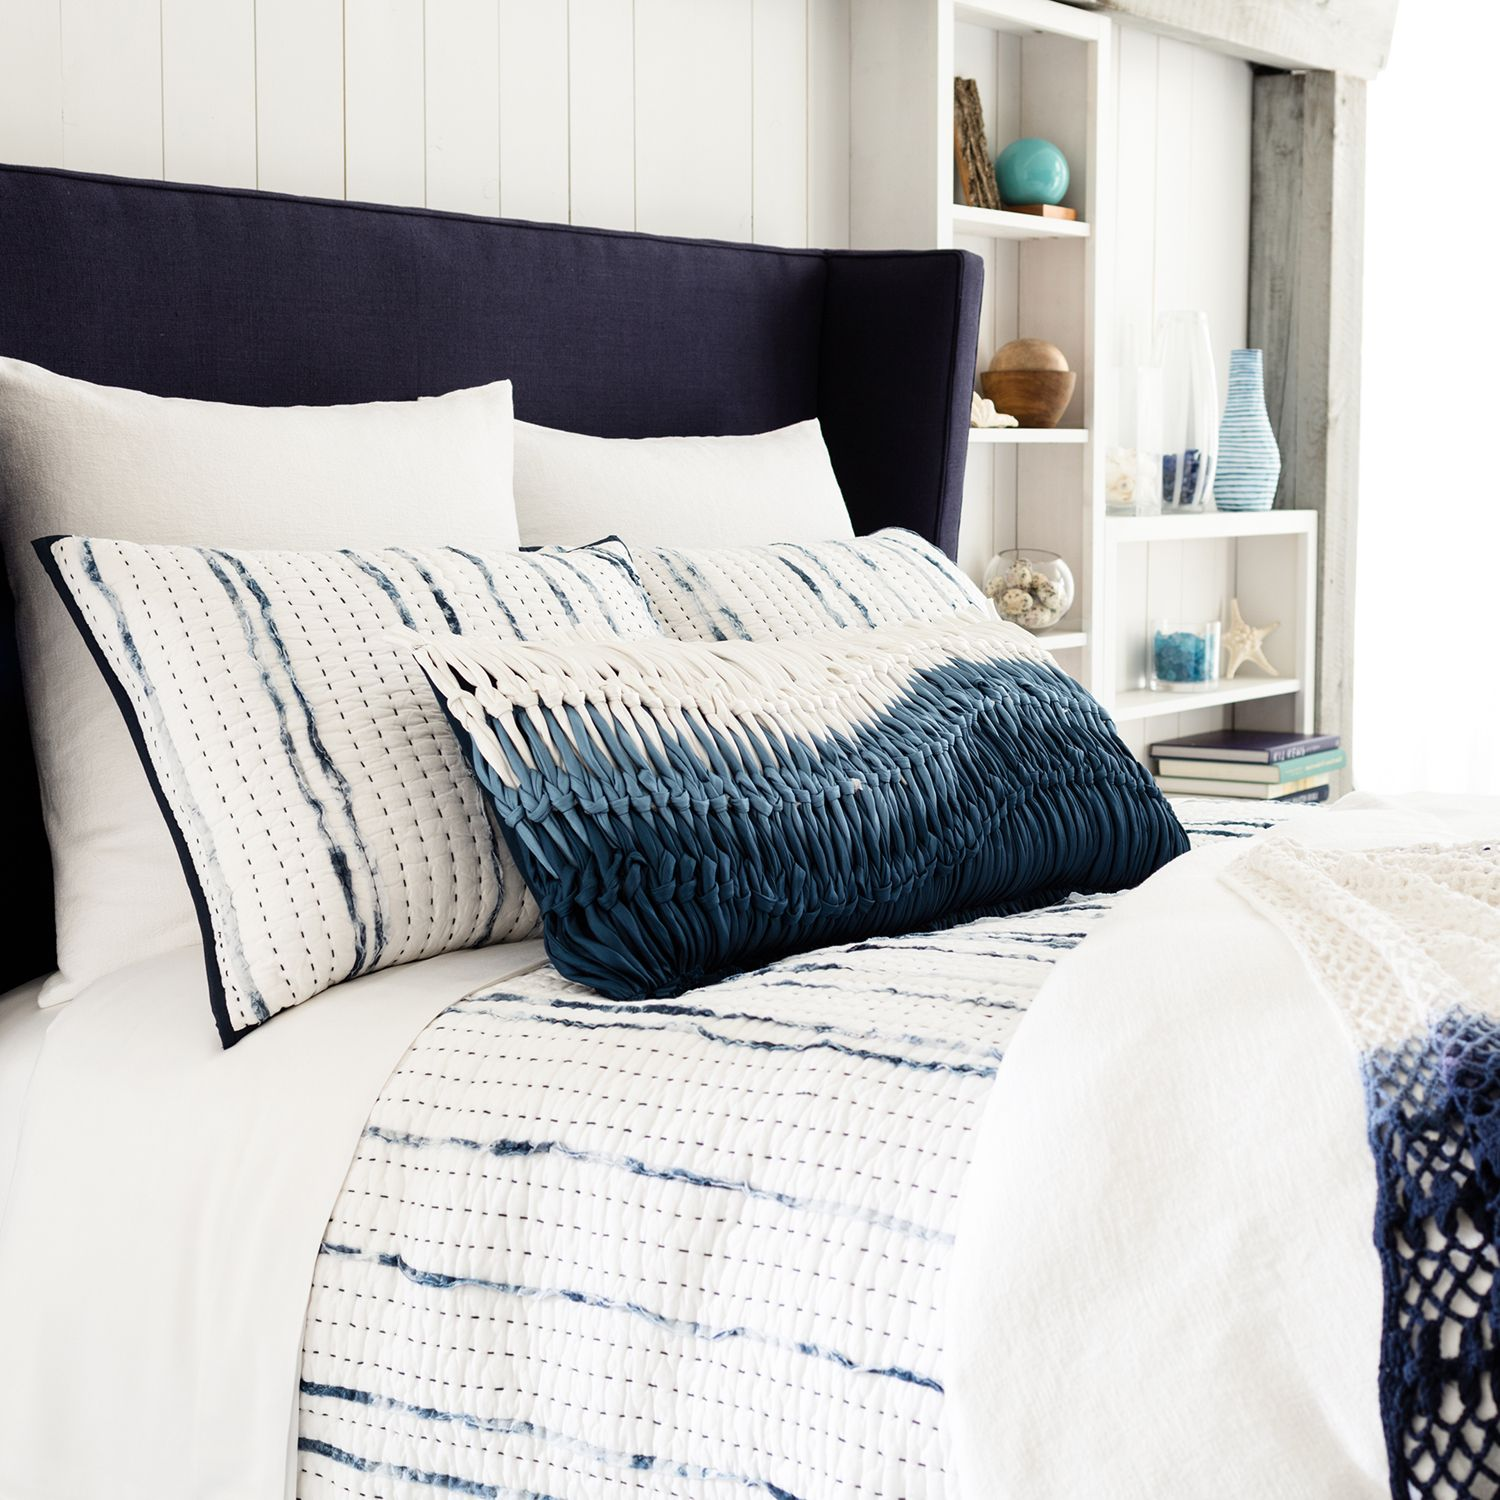 Pine Cone Hill Draftsman Quilt Bed, Bedroom inspirations